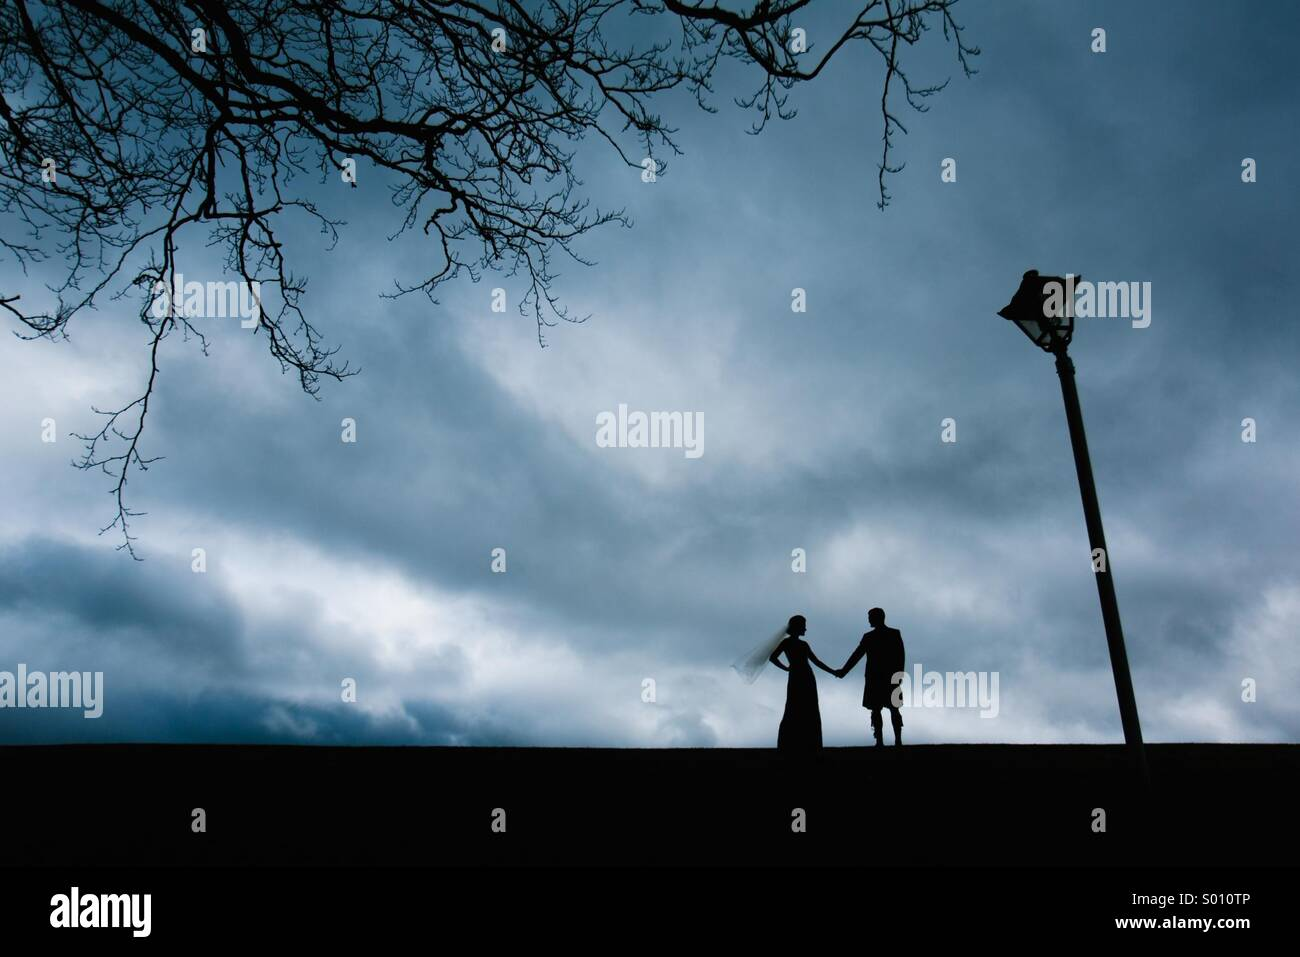 Bride and groom holding hands silhouetted next to a tree and lamppost - Stock Image